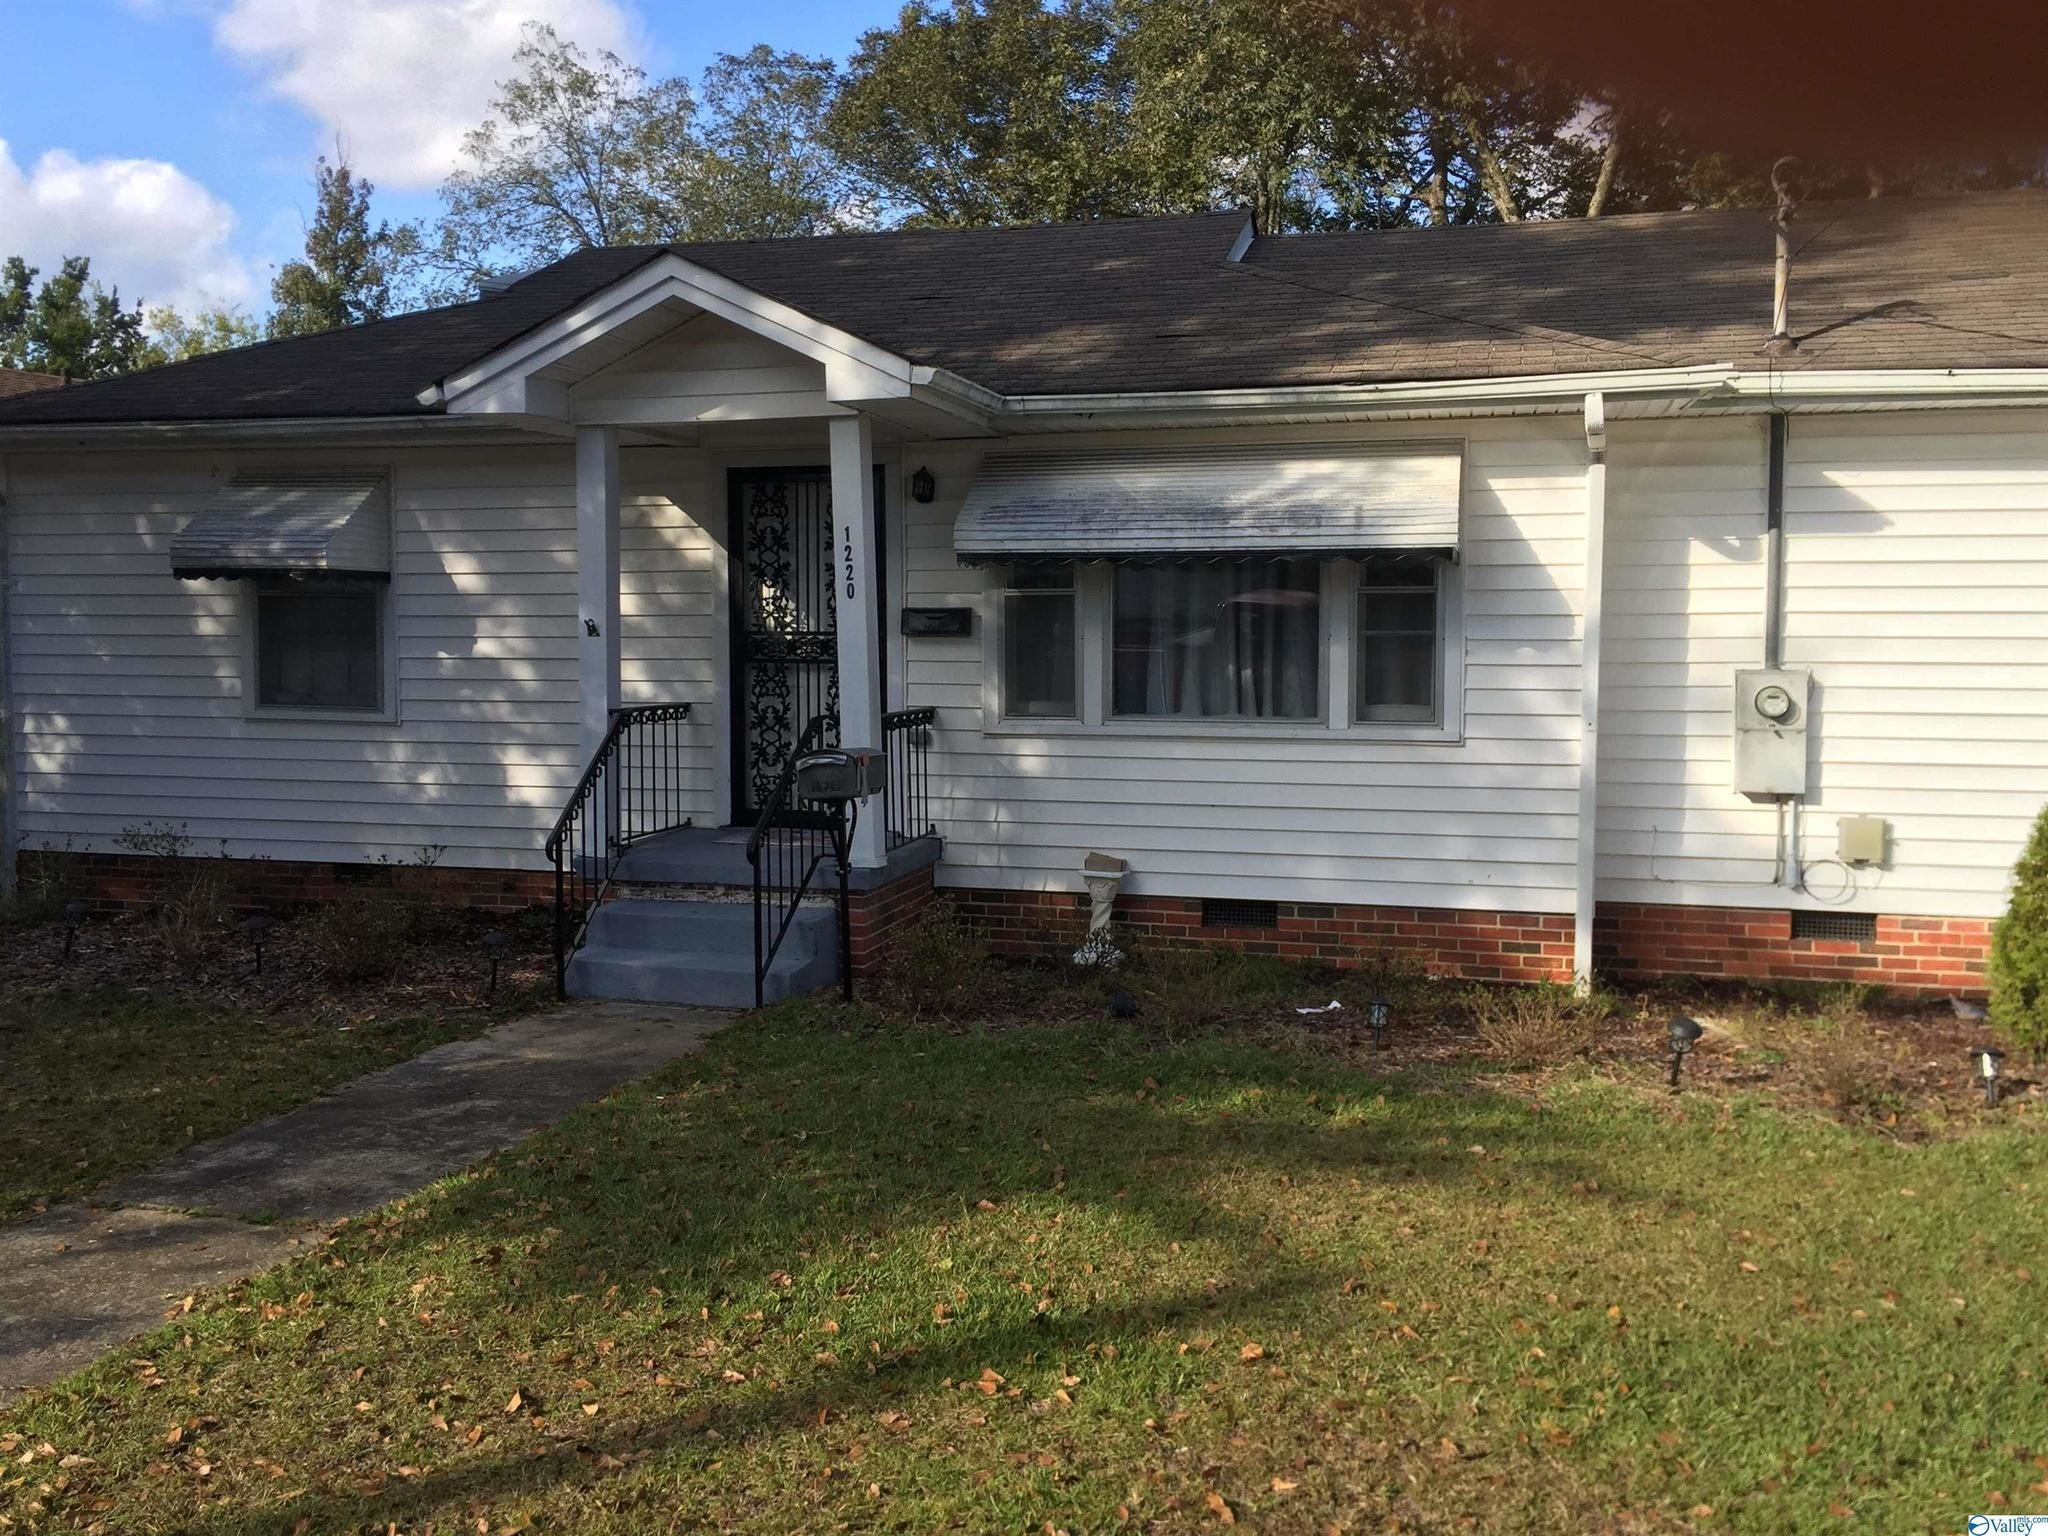 2-Bedroom House In Sheffield Heights